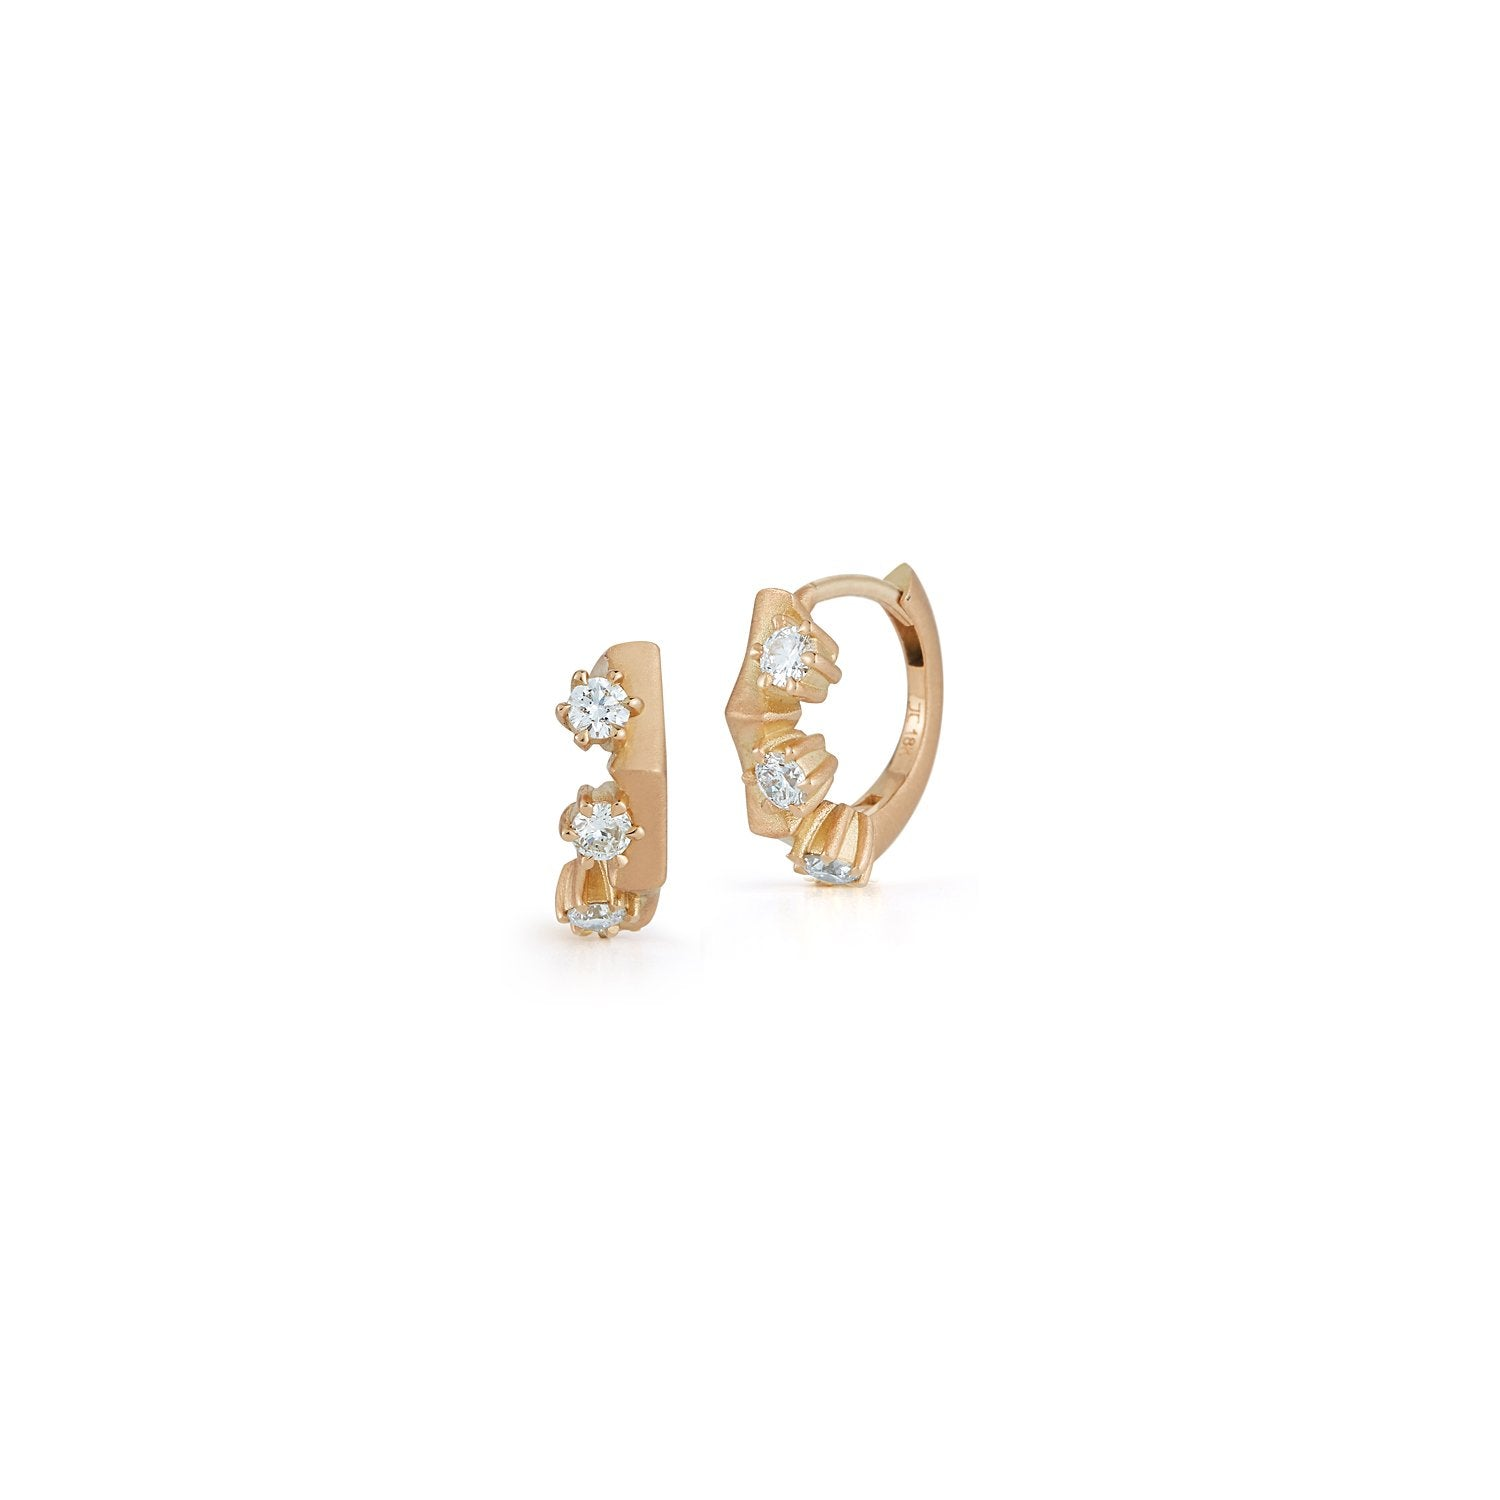 Clara Mini Huggie Earrings